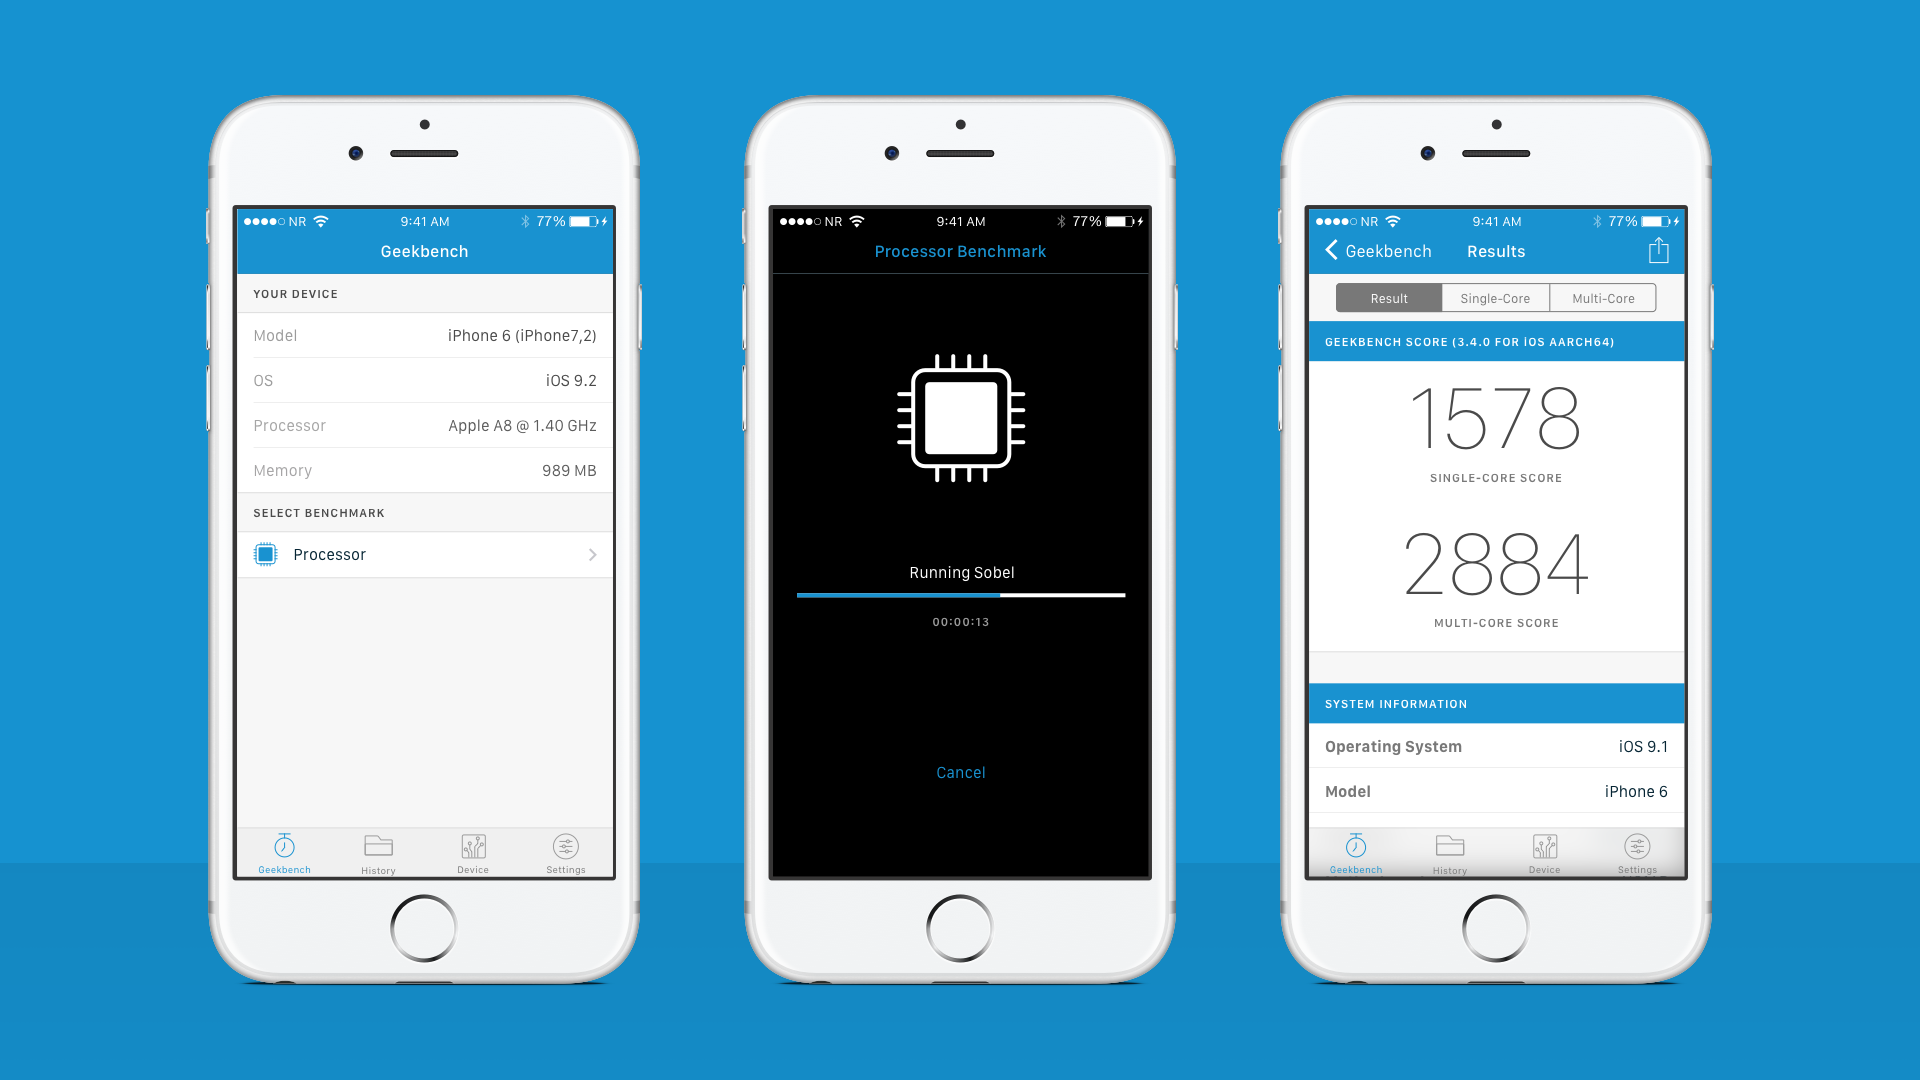 Geekbench 4: iPhone App